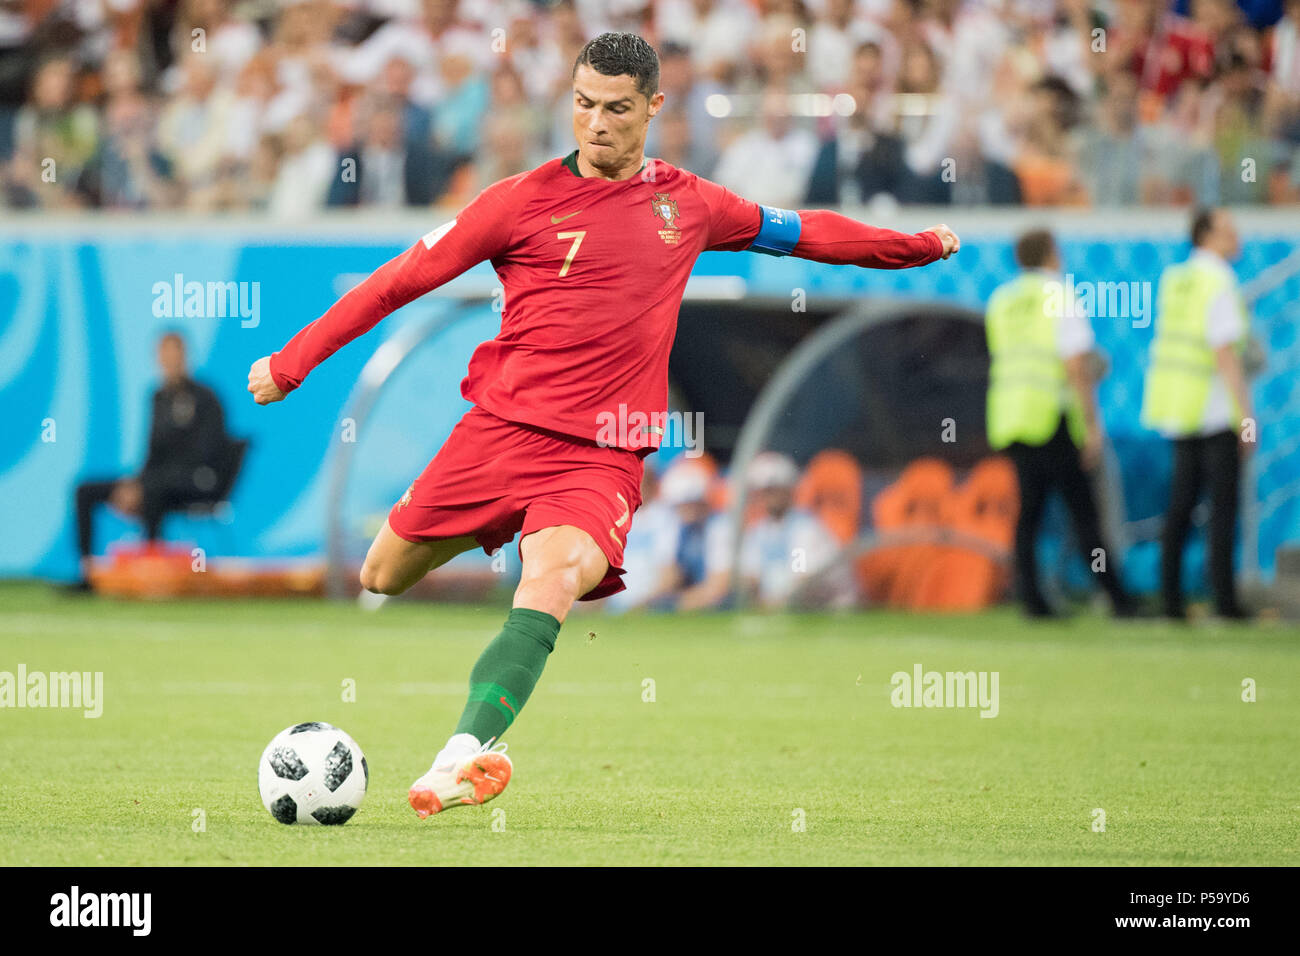 Saransk Russland 26th June 2018 Cristiano Ronaldo Por With Ball Single Action With Ball Action Full